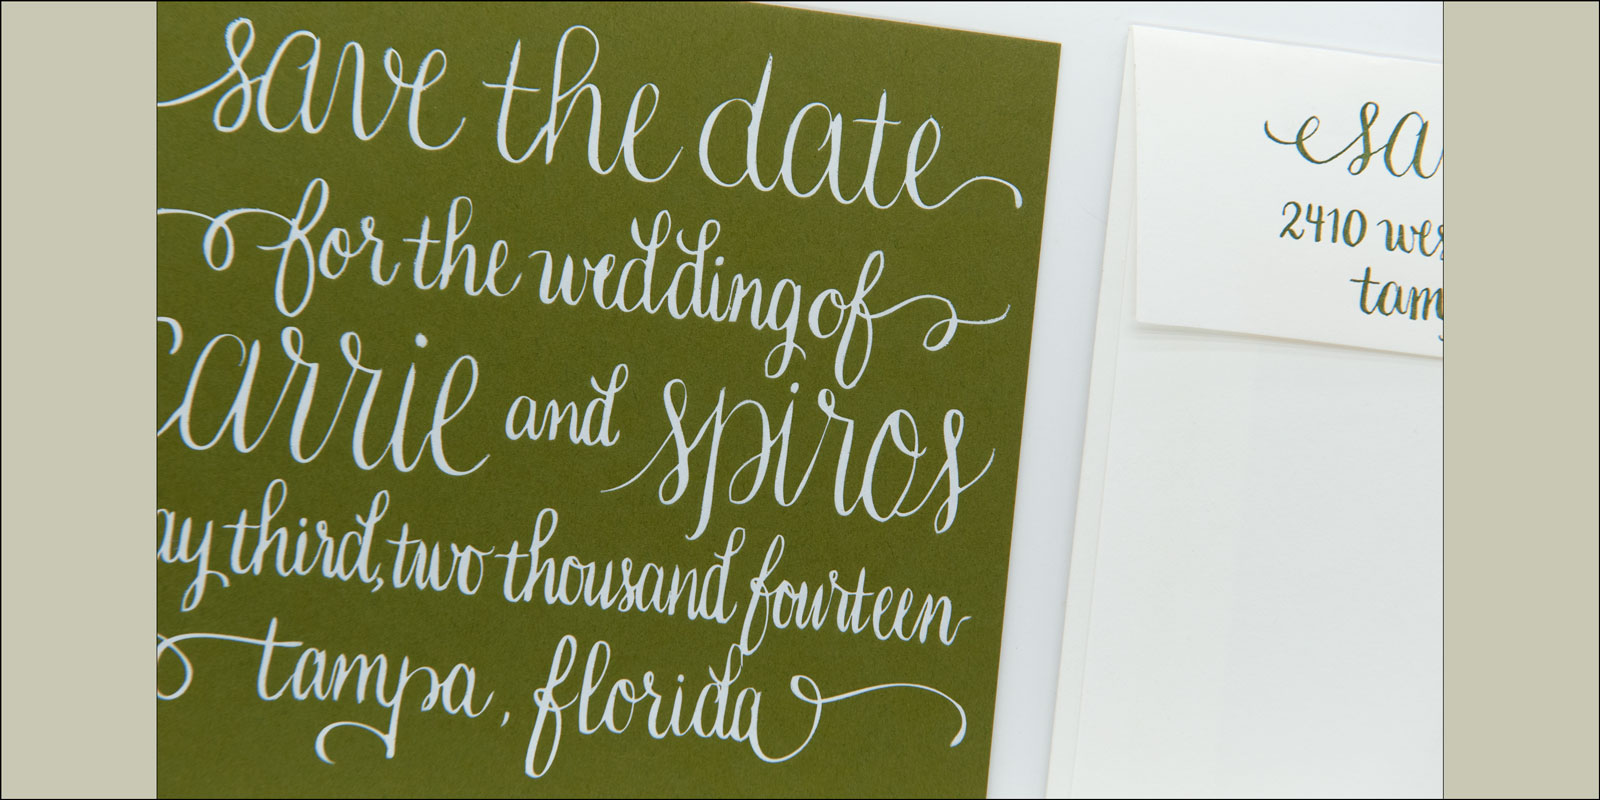 Carrie-Spiros-Save-the-Date-2